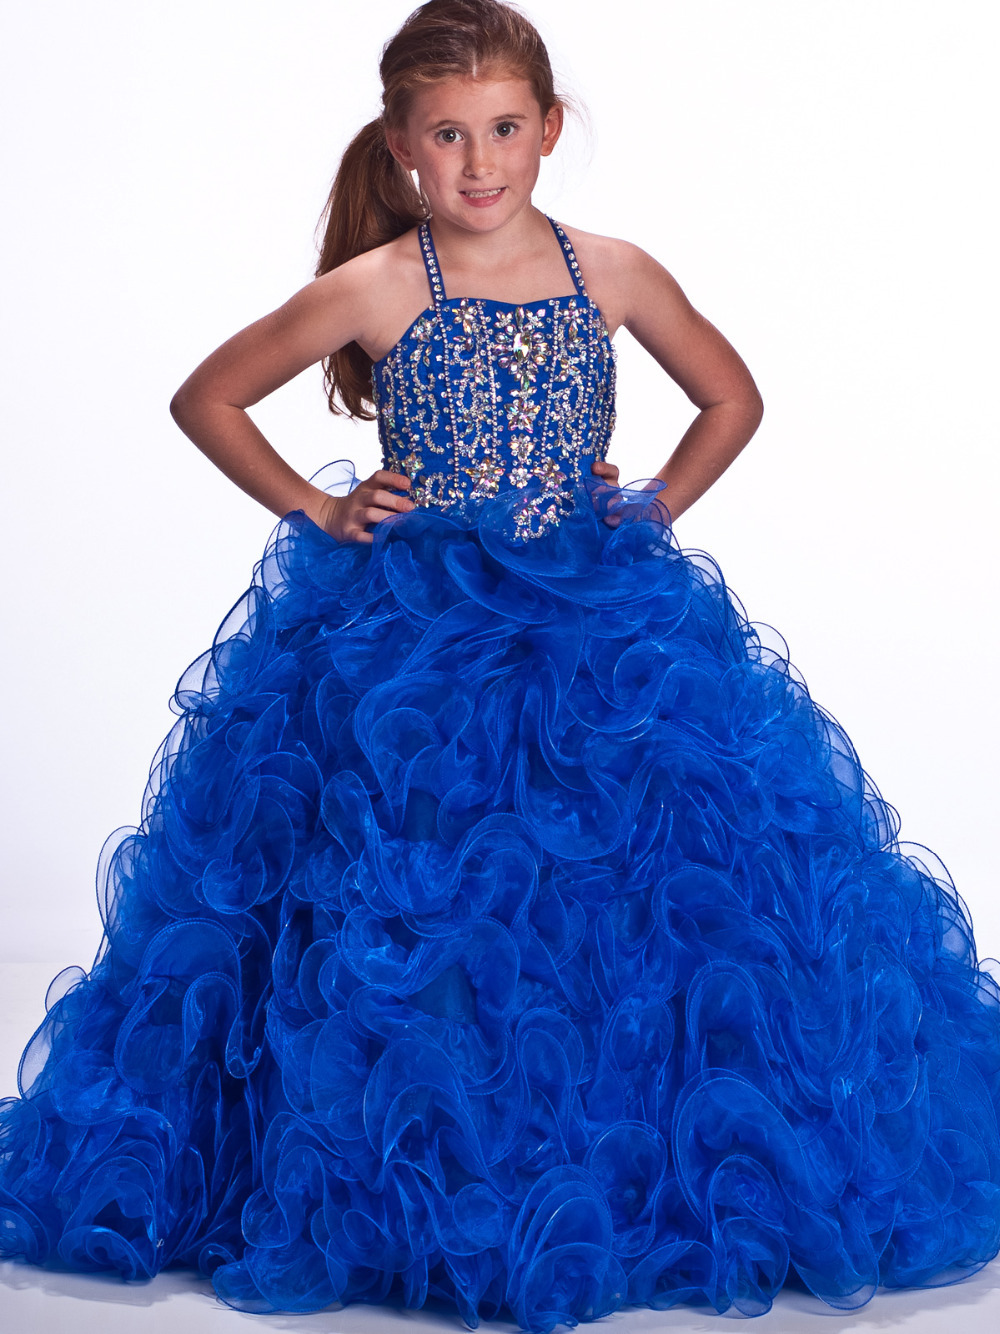 Blue flower girl dress for wedding kids princess dress new for 10 year old dresses for weddings